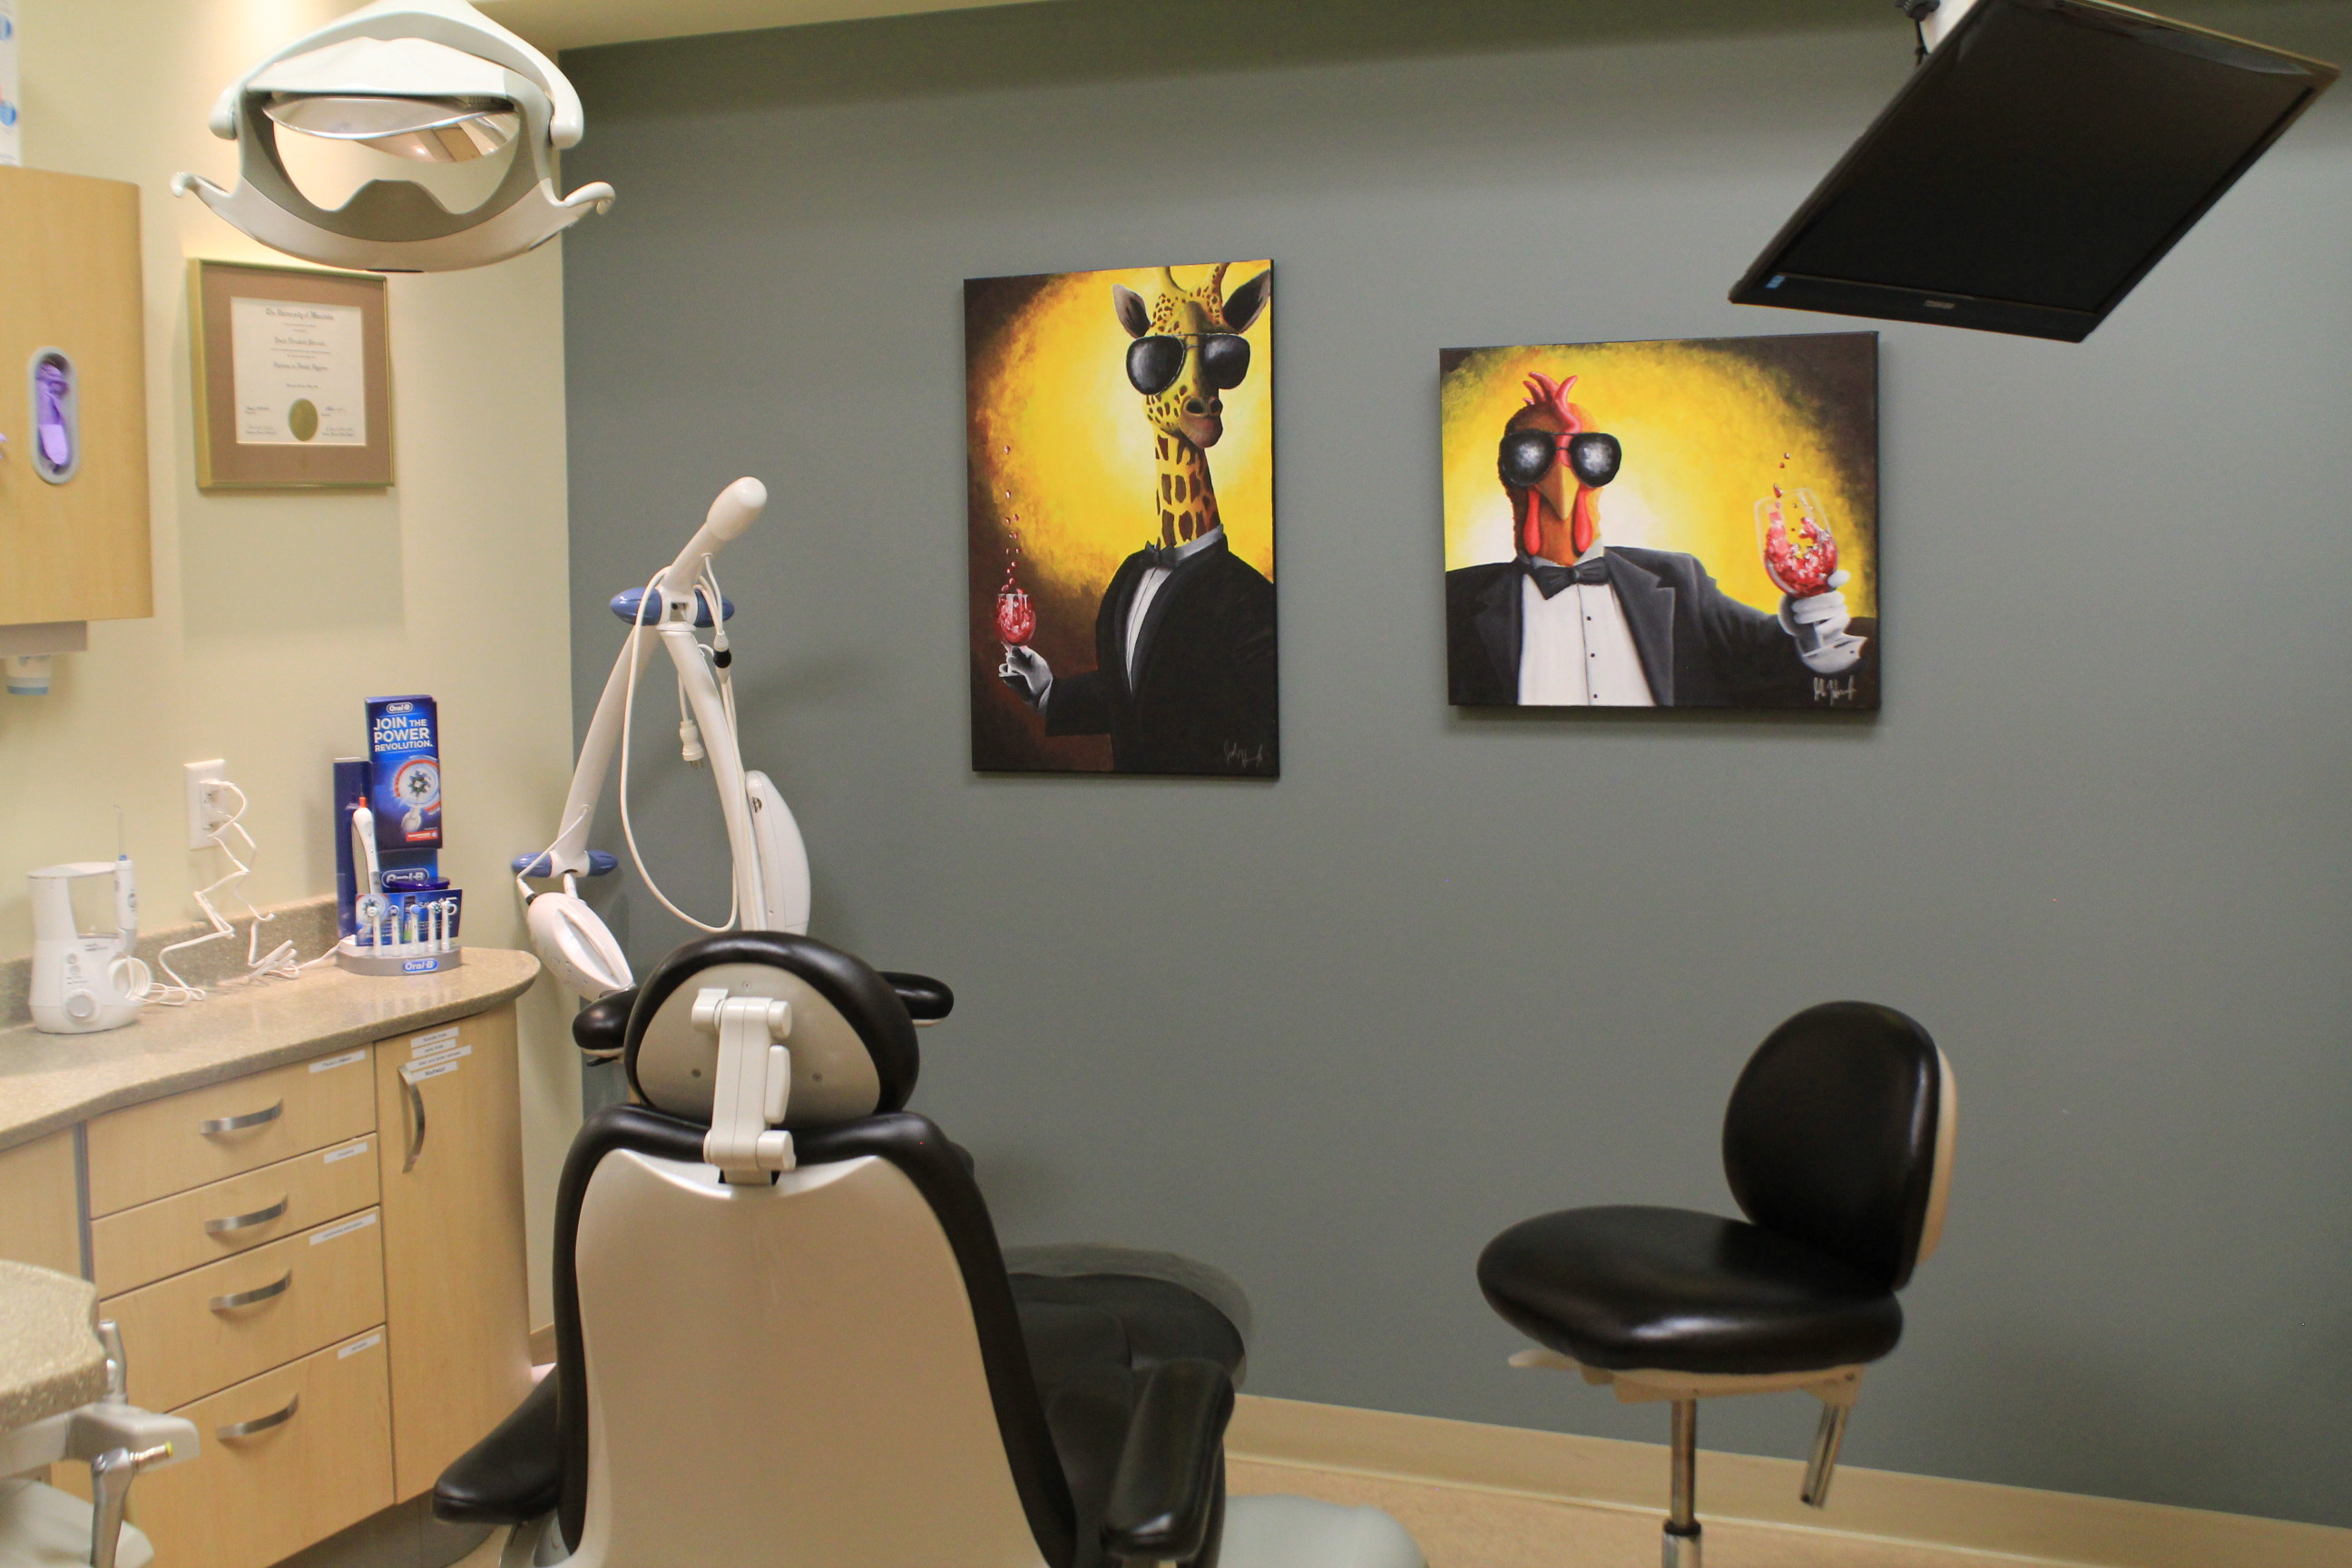 Edmonton, AB T5E4C2 Dr. Derek Fika Family Dentistry and Cosmetic Dentistry